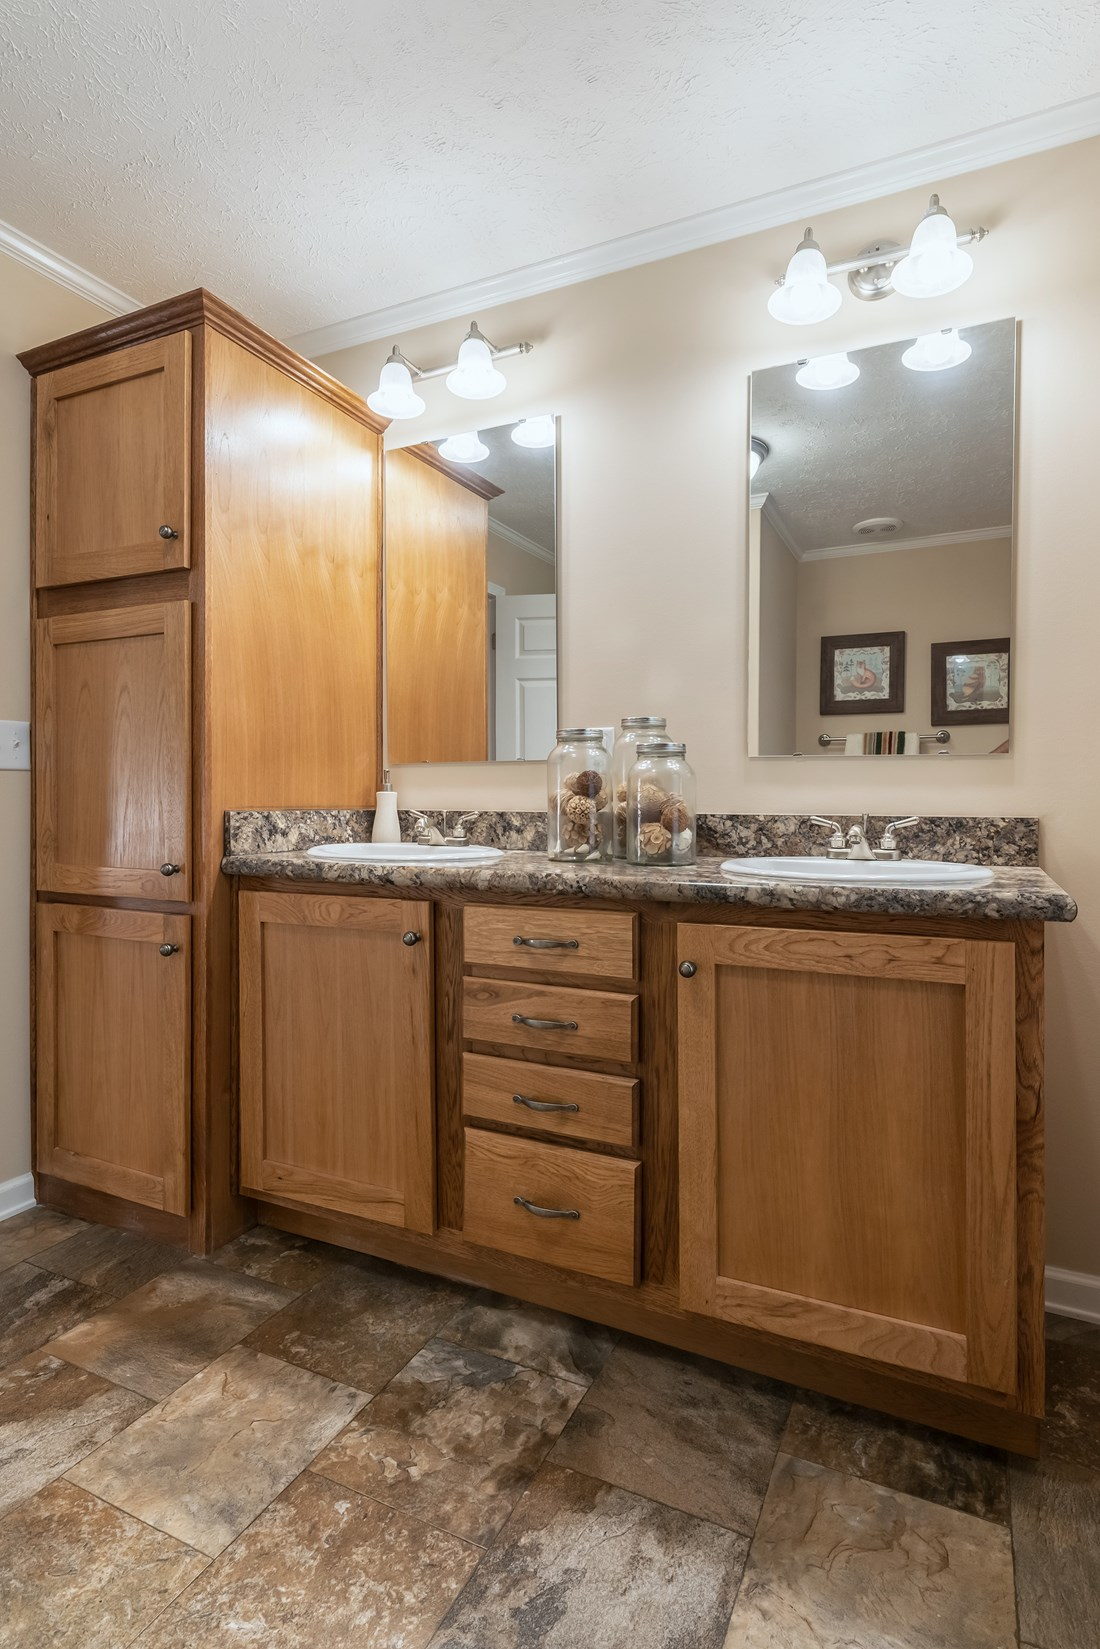 The 2980 LEGACY Master Bathroom. This Modular Home features 3 bedrooms and 2 baths.